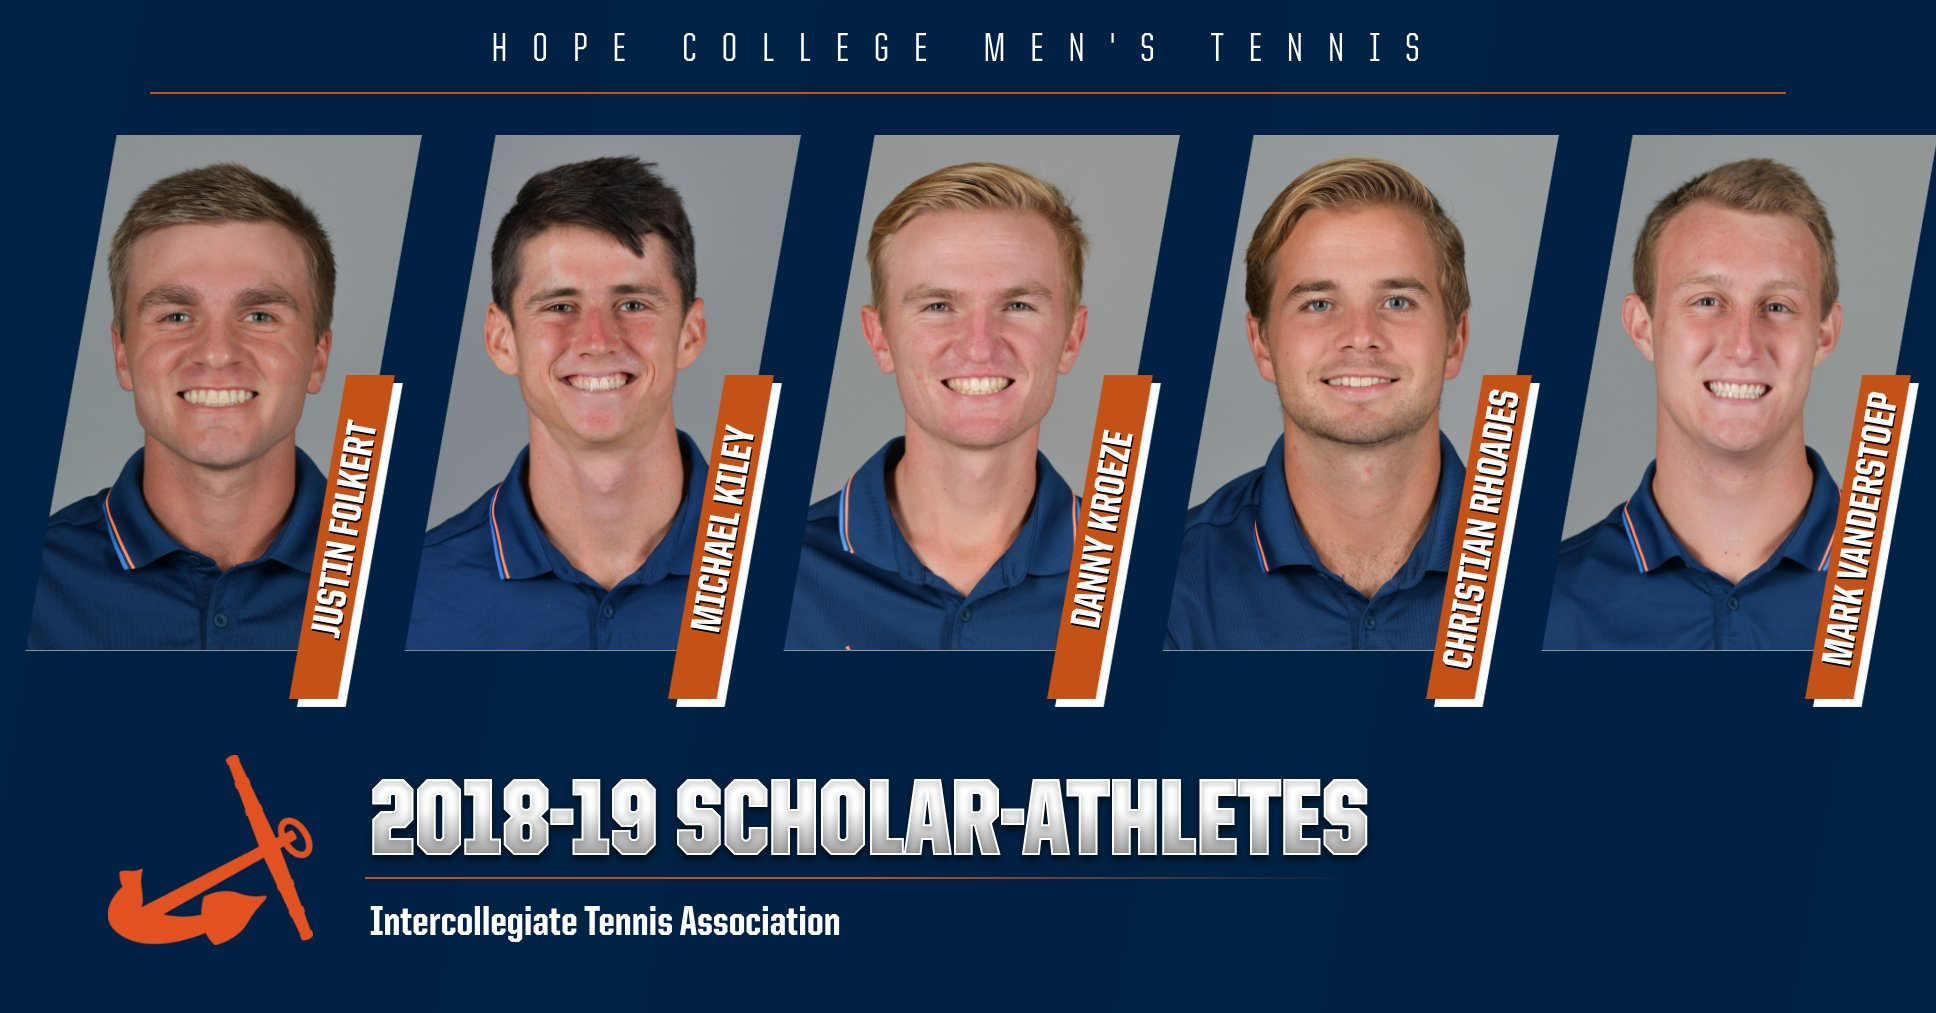 Five Hope men's tennis players pose for portraits